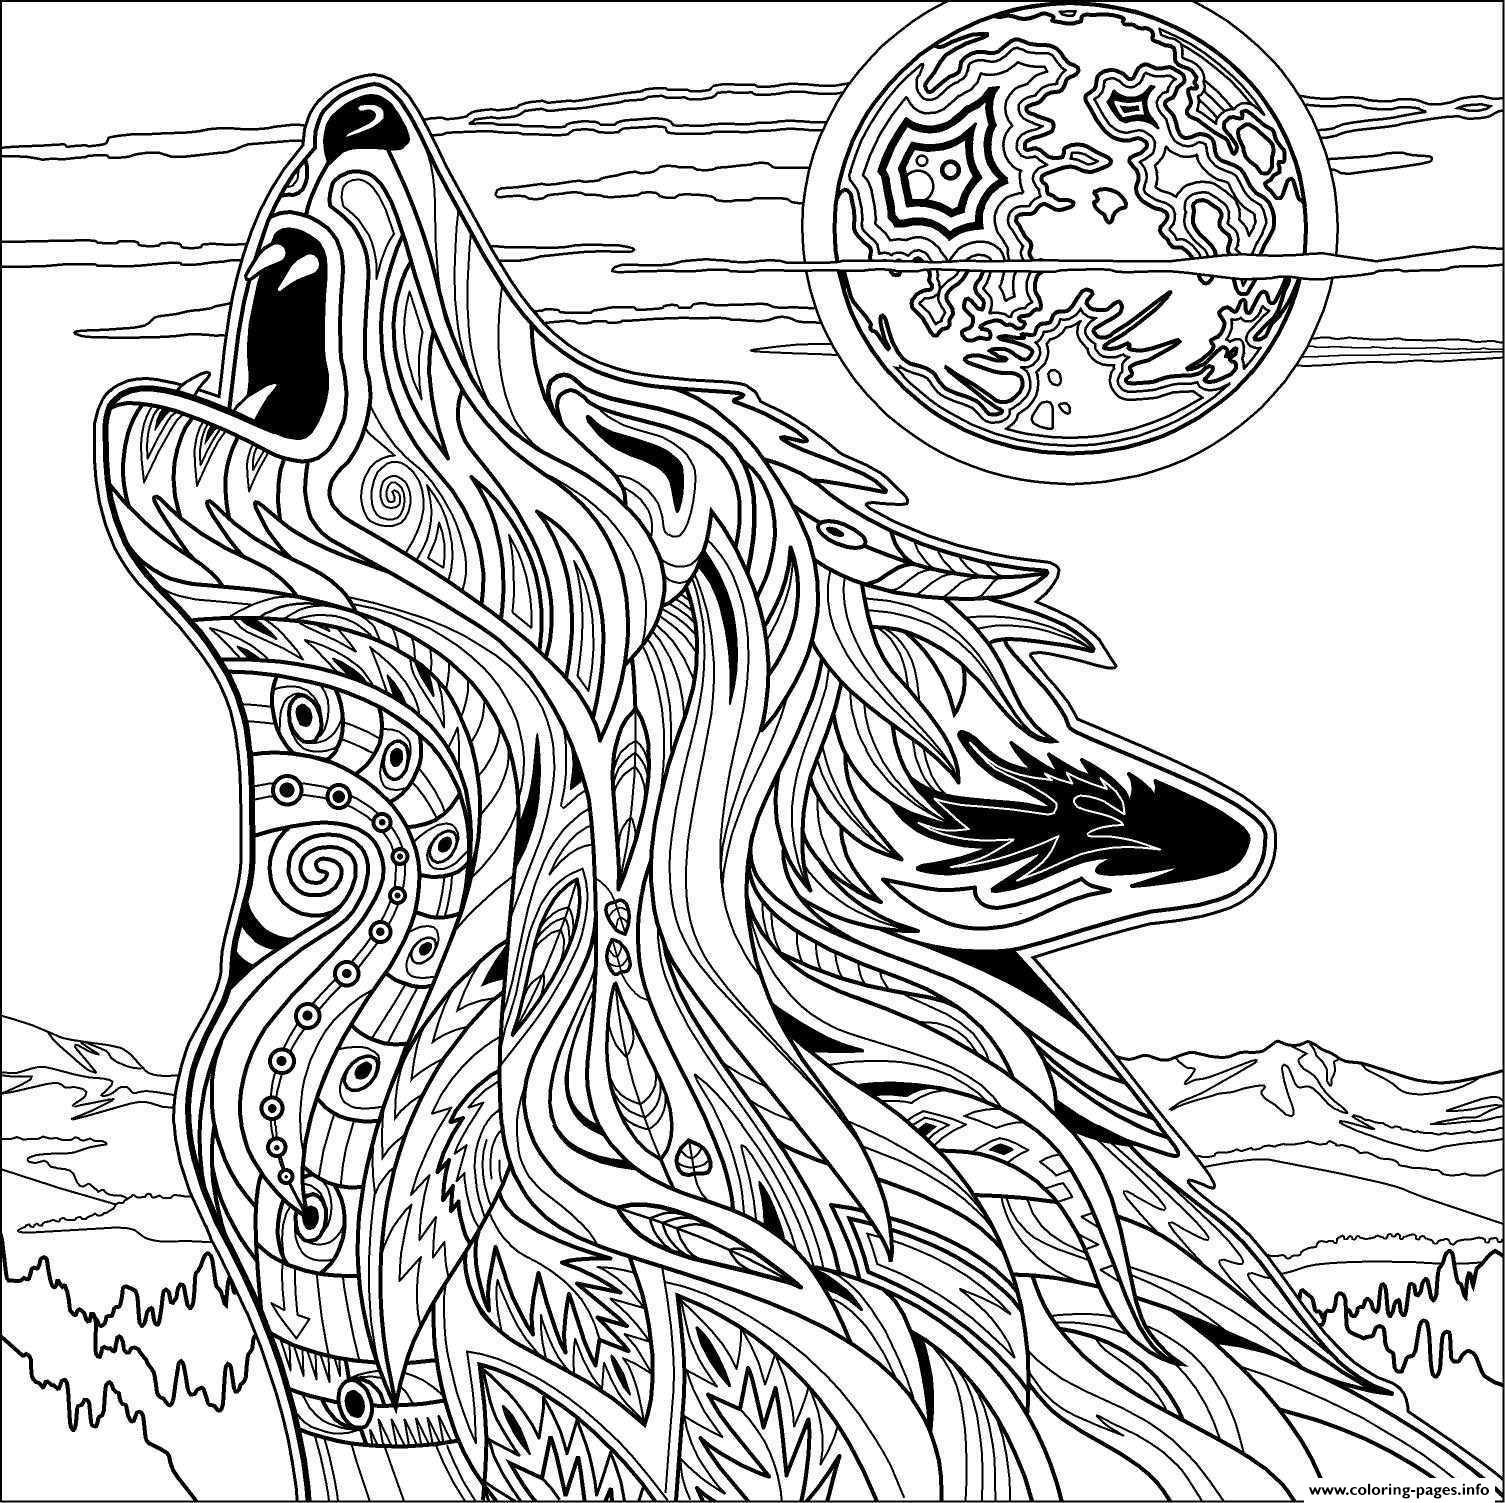 Mandala Wolf Coloring Pages Free Coloring Library Gallery Of Wolves Coloring Pages Wolf Coloring Pages Free Coloring Pages Collection